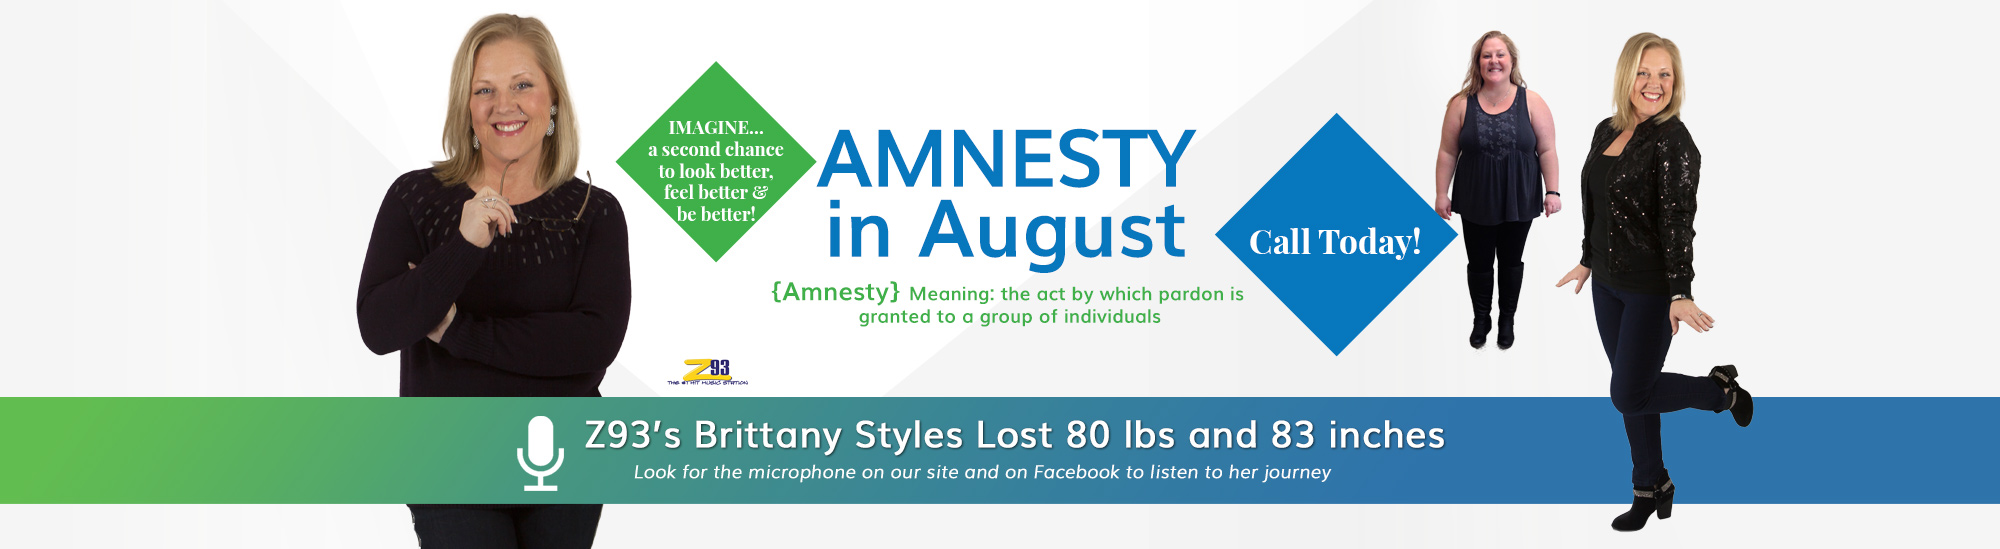 Amnesty in August! A second Chance to Look, Feel and Be Better. Call today for specials to get back on your weight loss goals and plans.